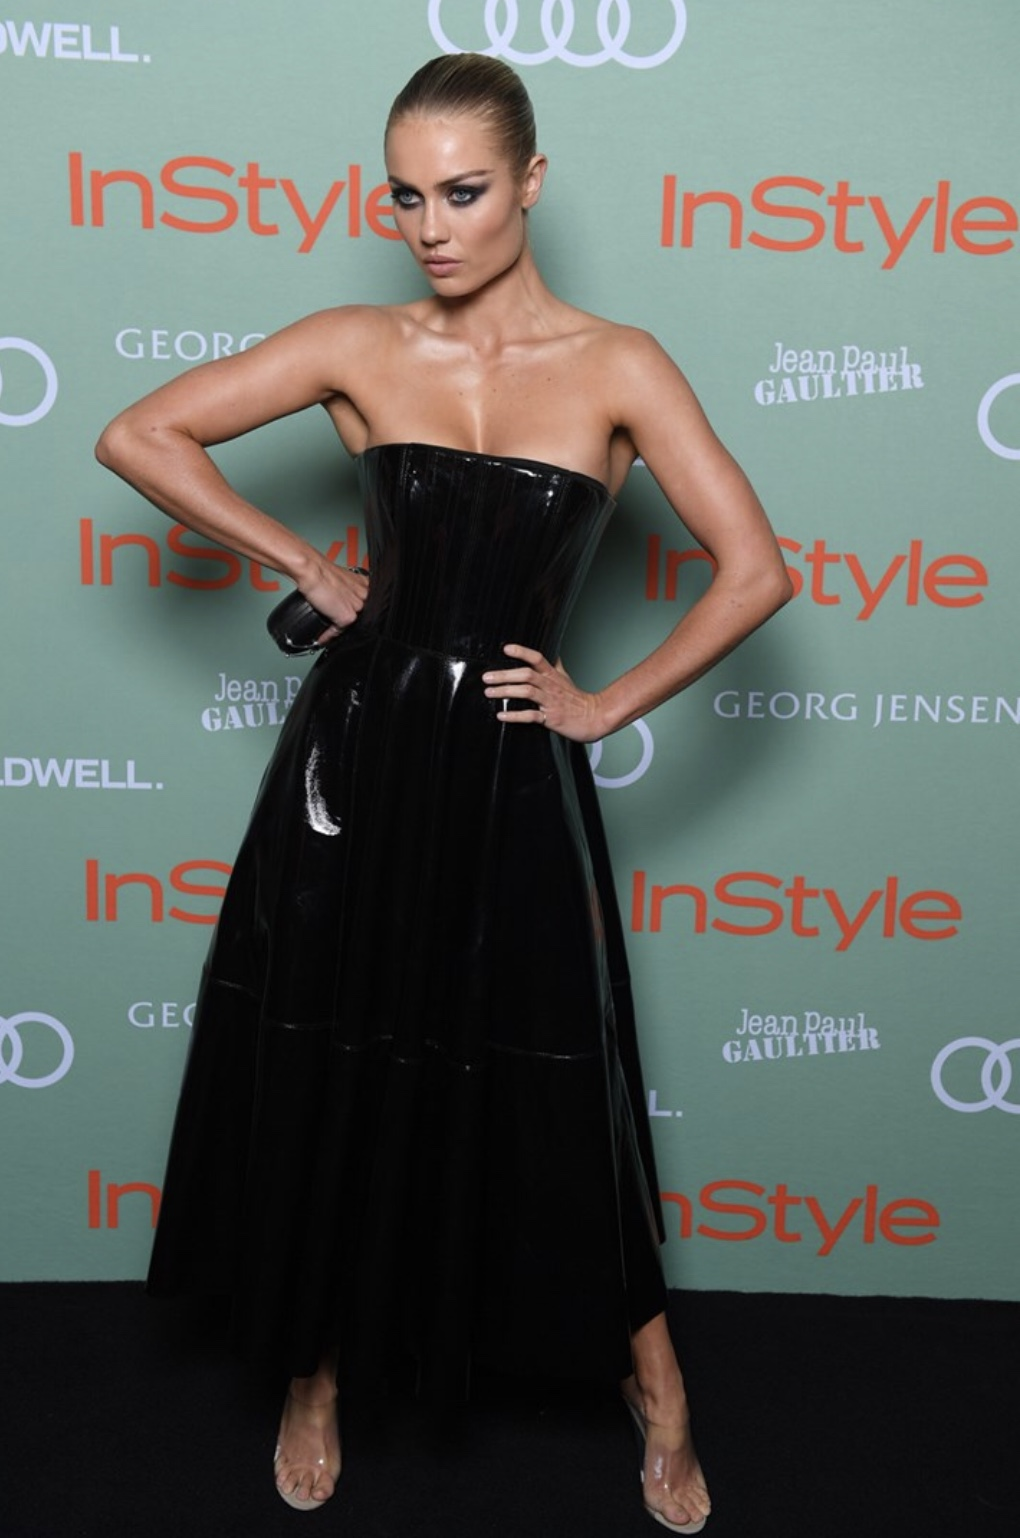 Women Of Style 2018 Awards - Elyse Knowles 7.jpg